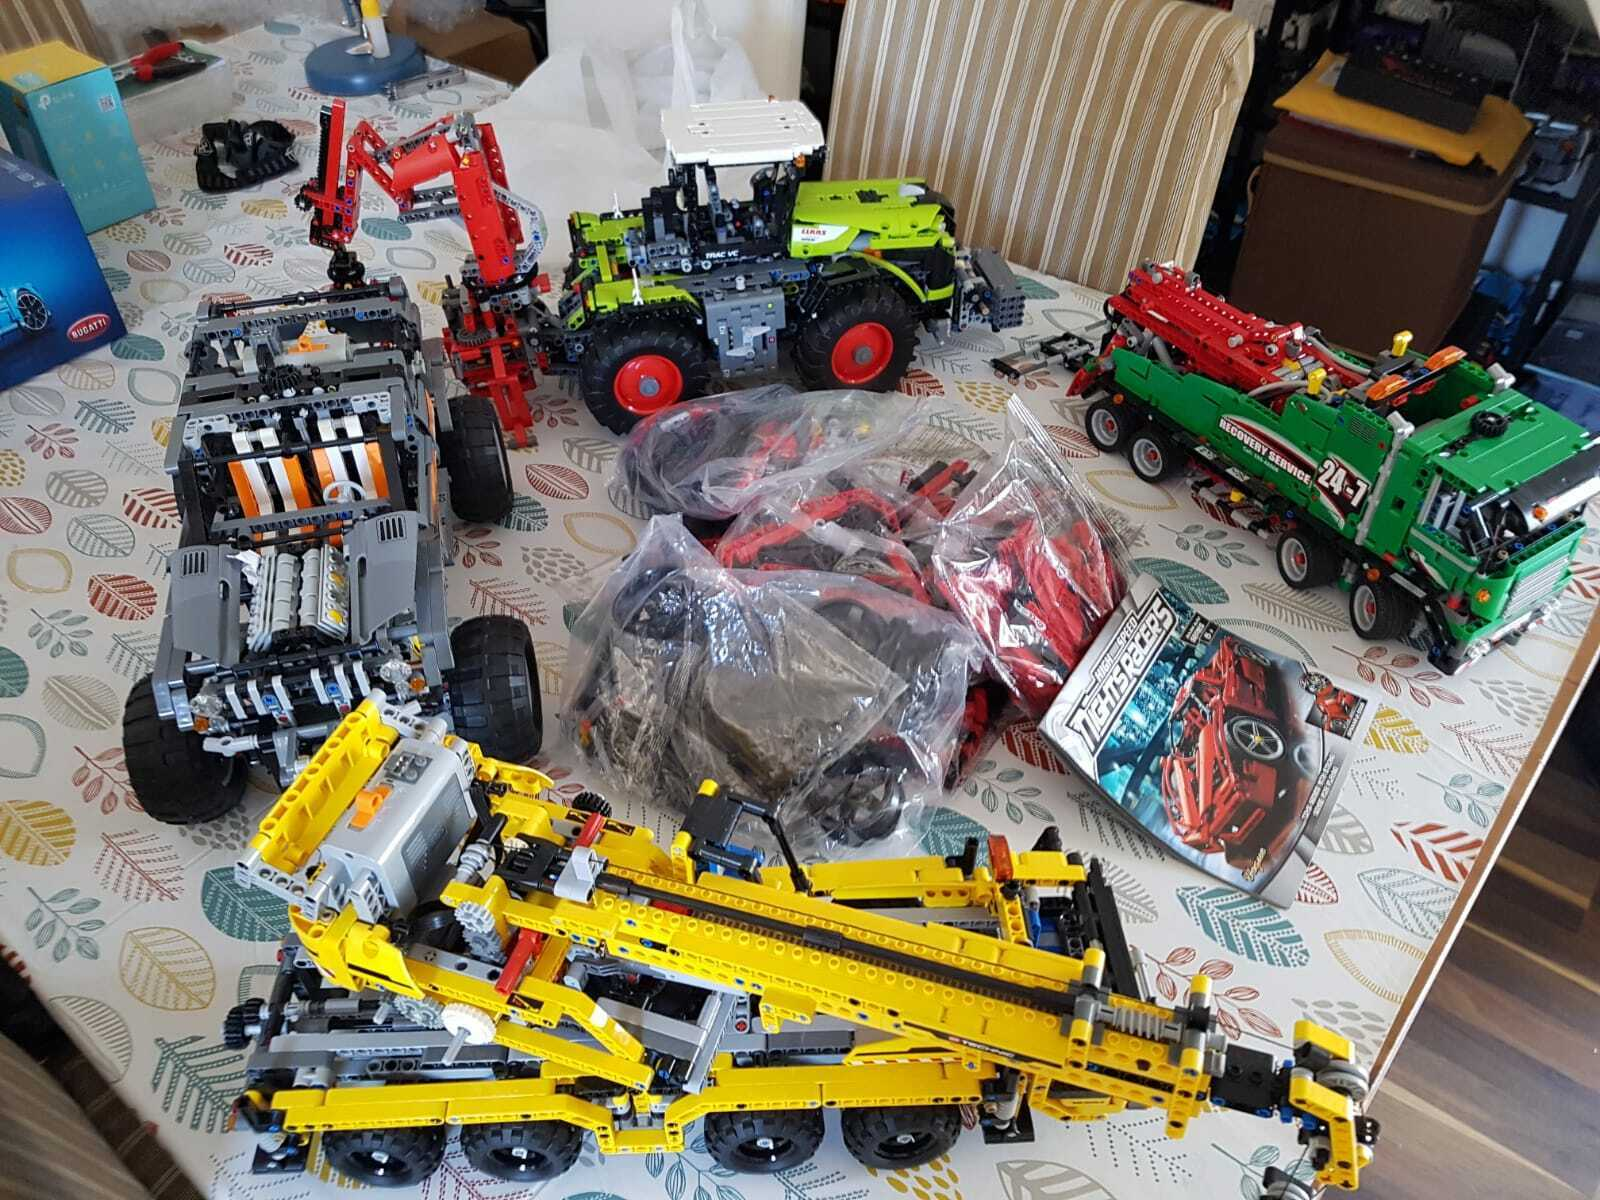 Over 500 worth of Technic Power Functions sets all built built built once 98e